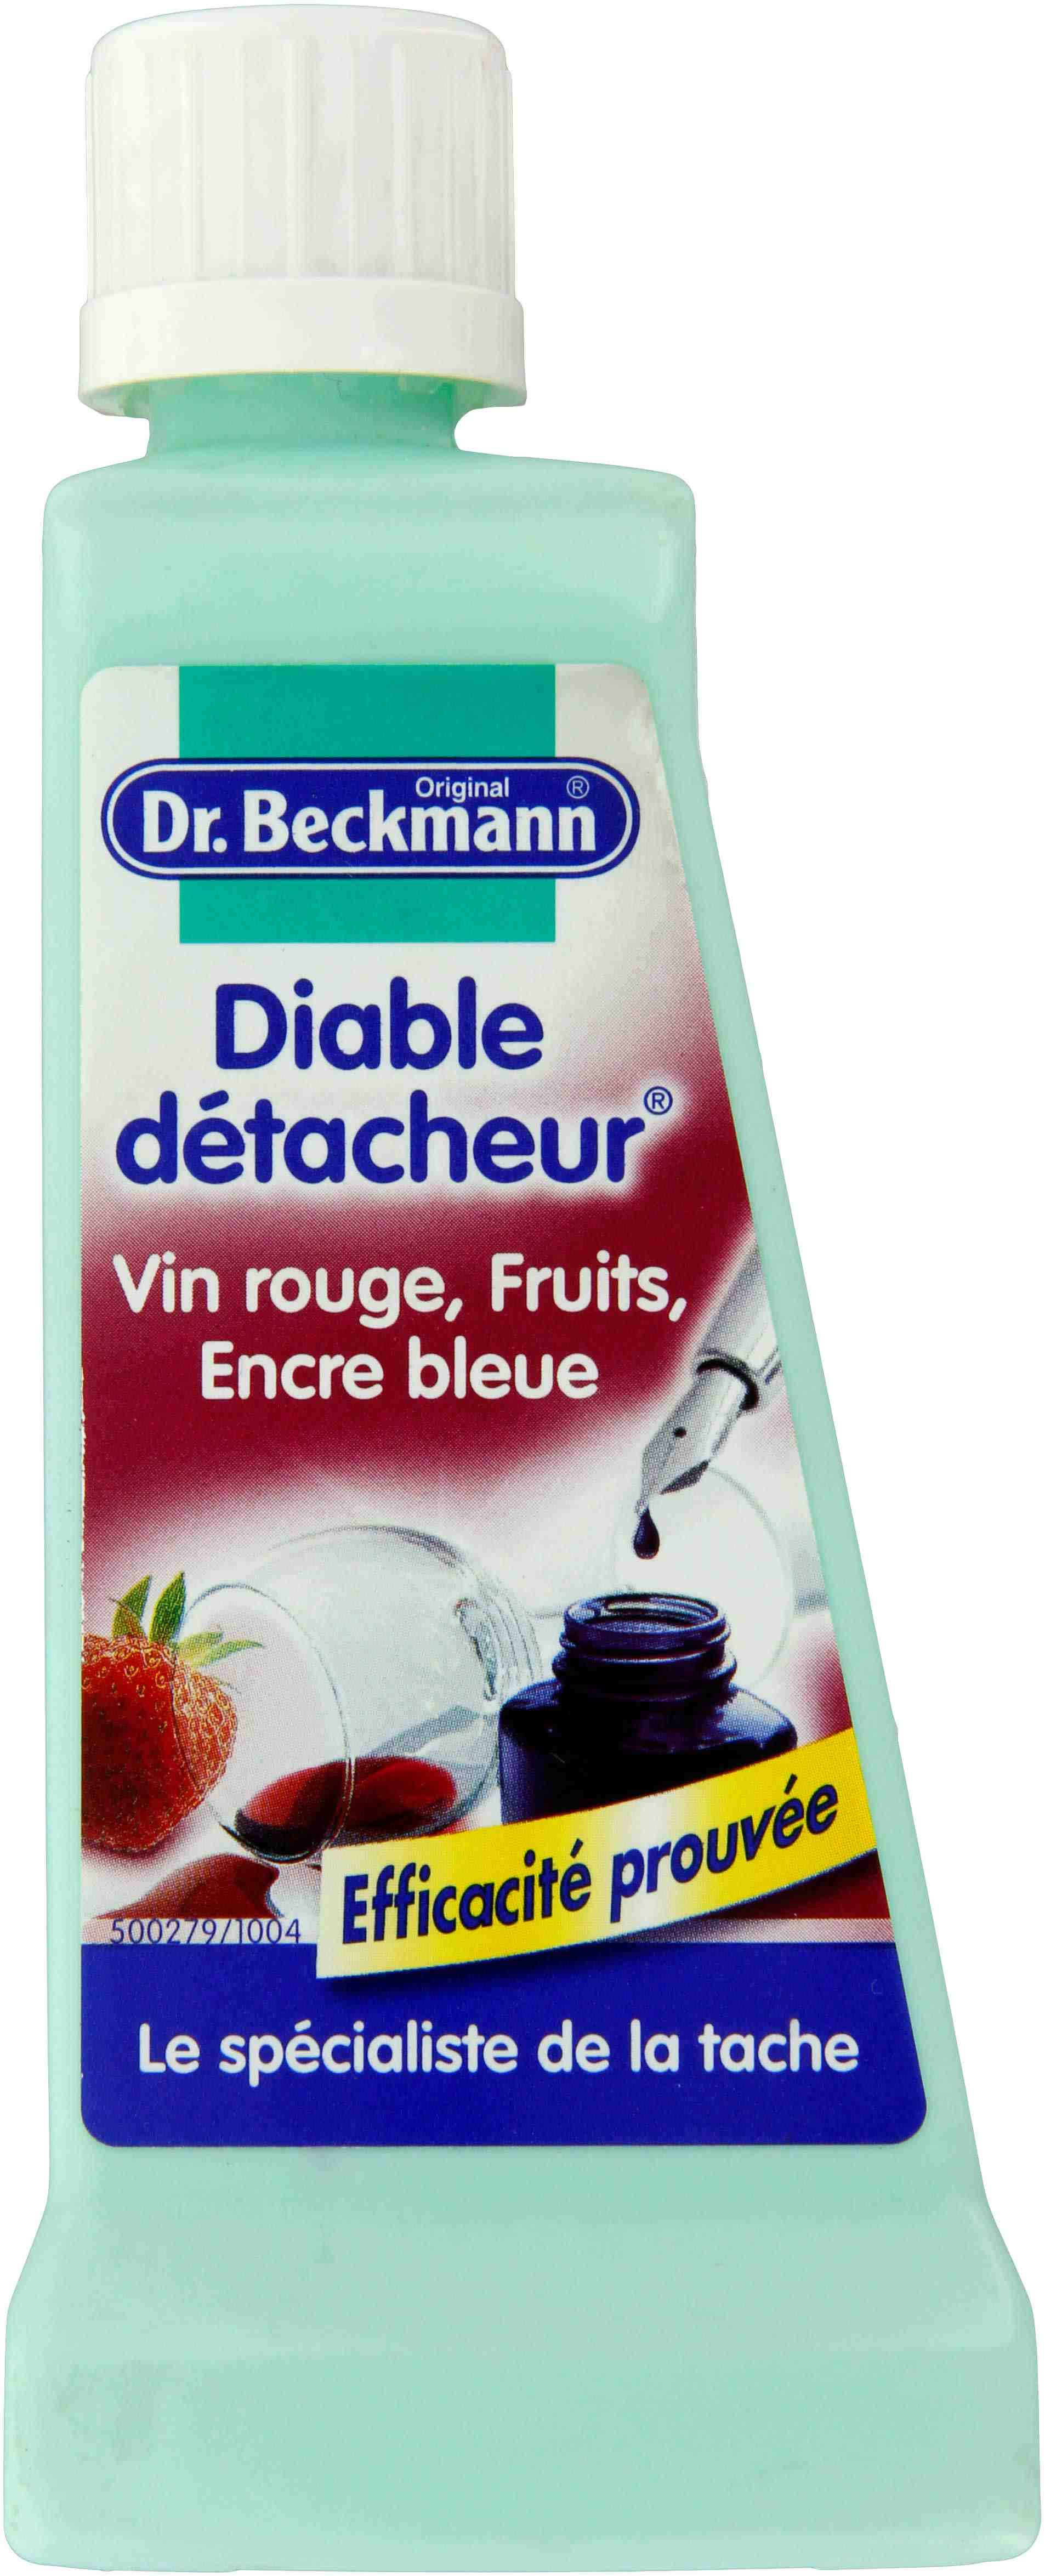 Diable détacheur Dr Beckmann